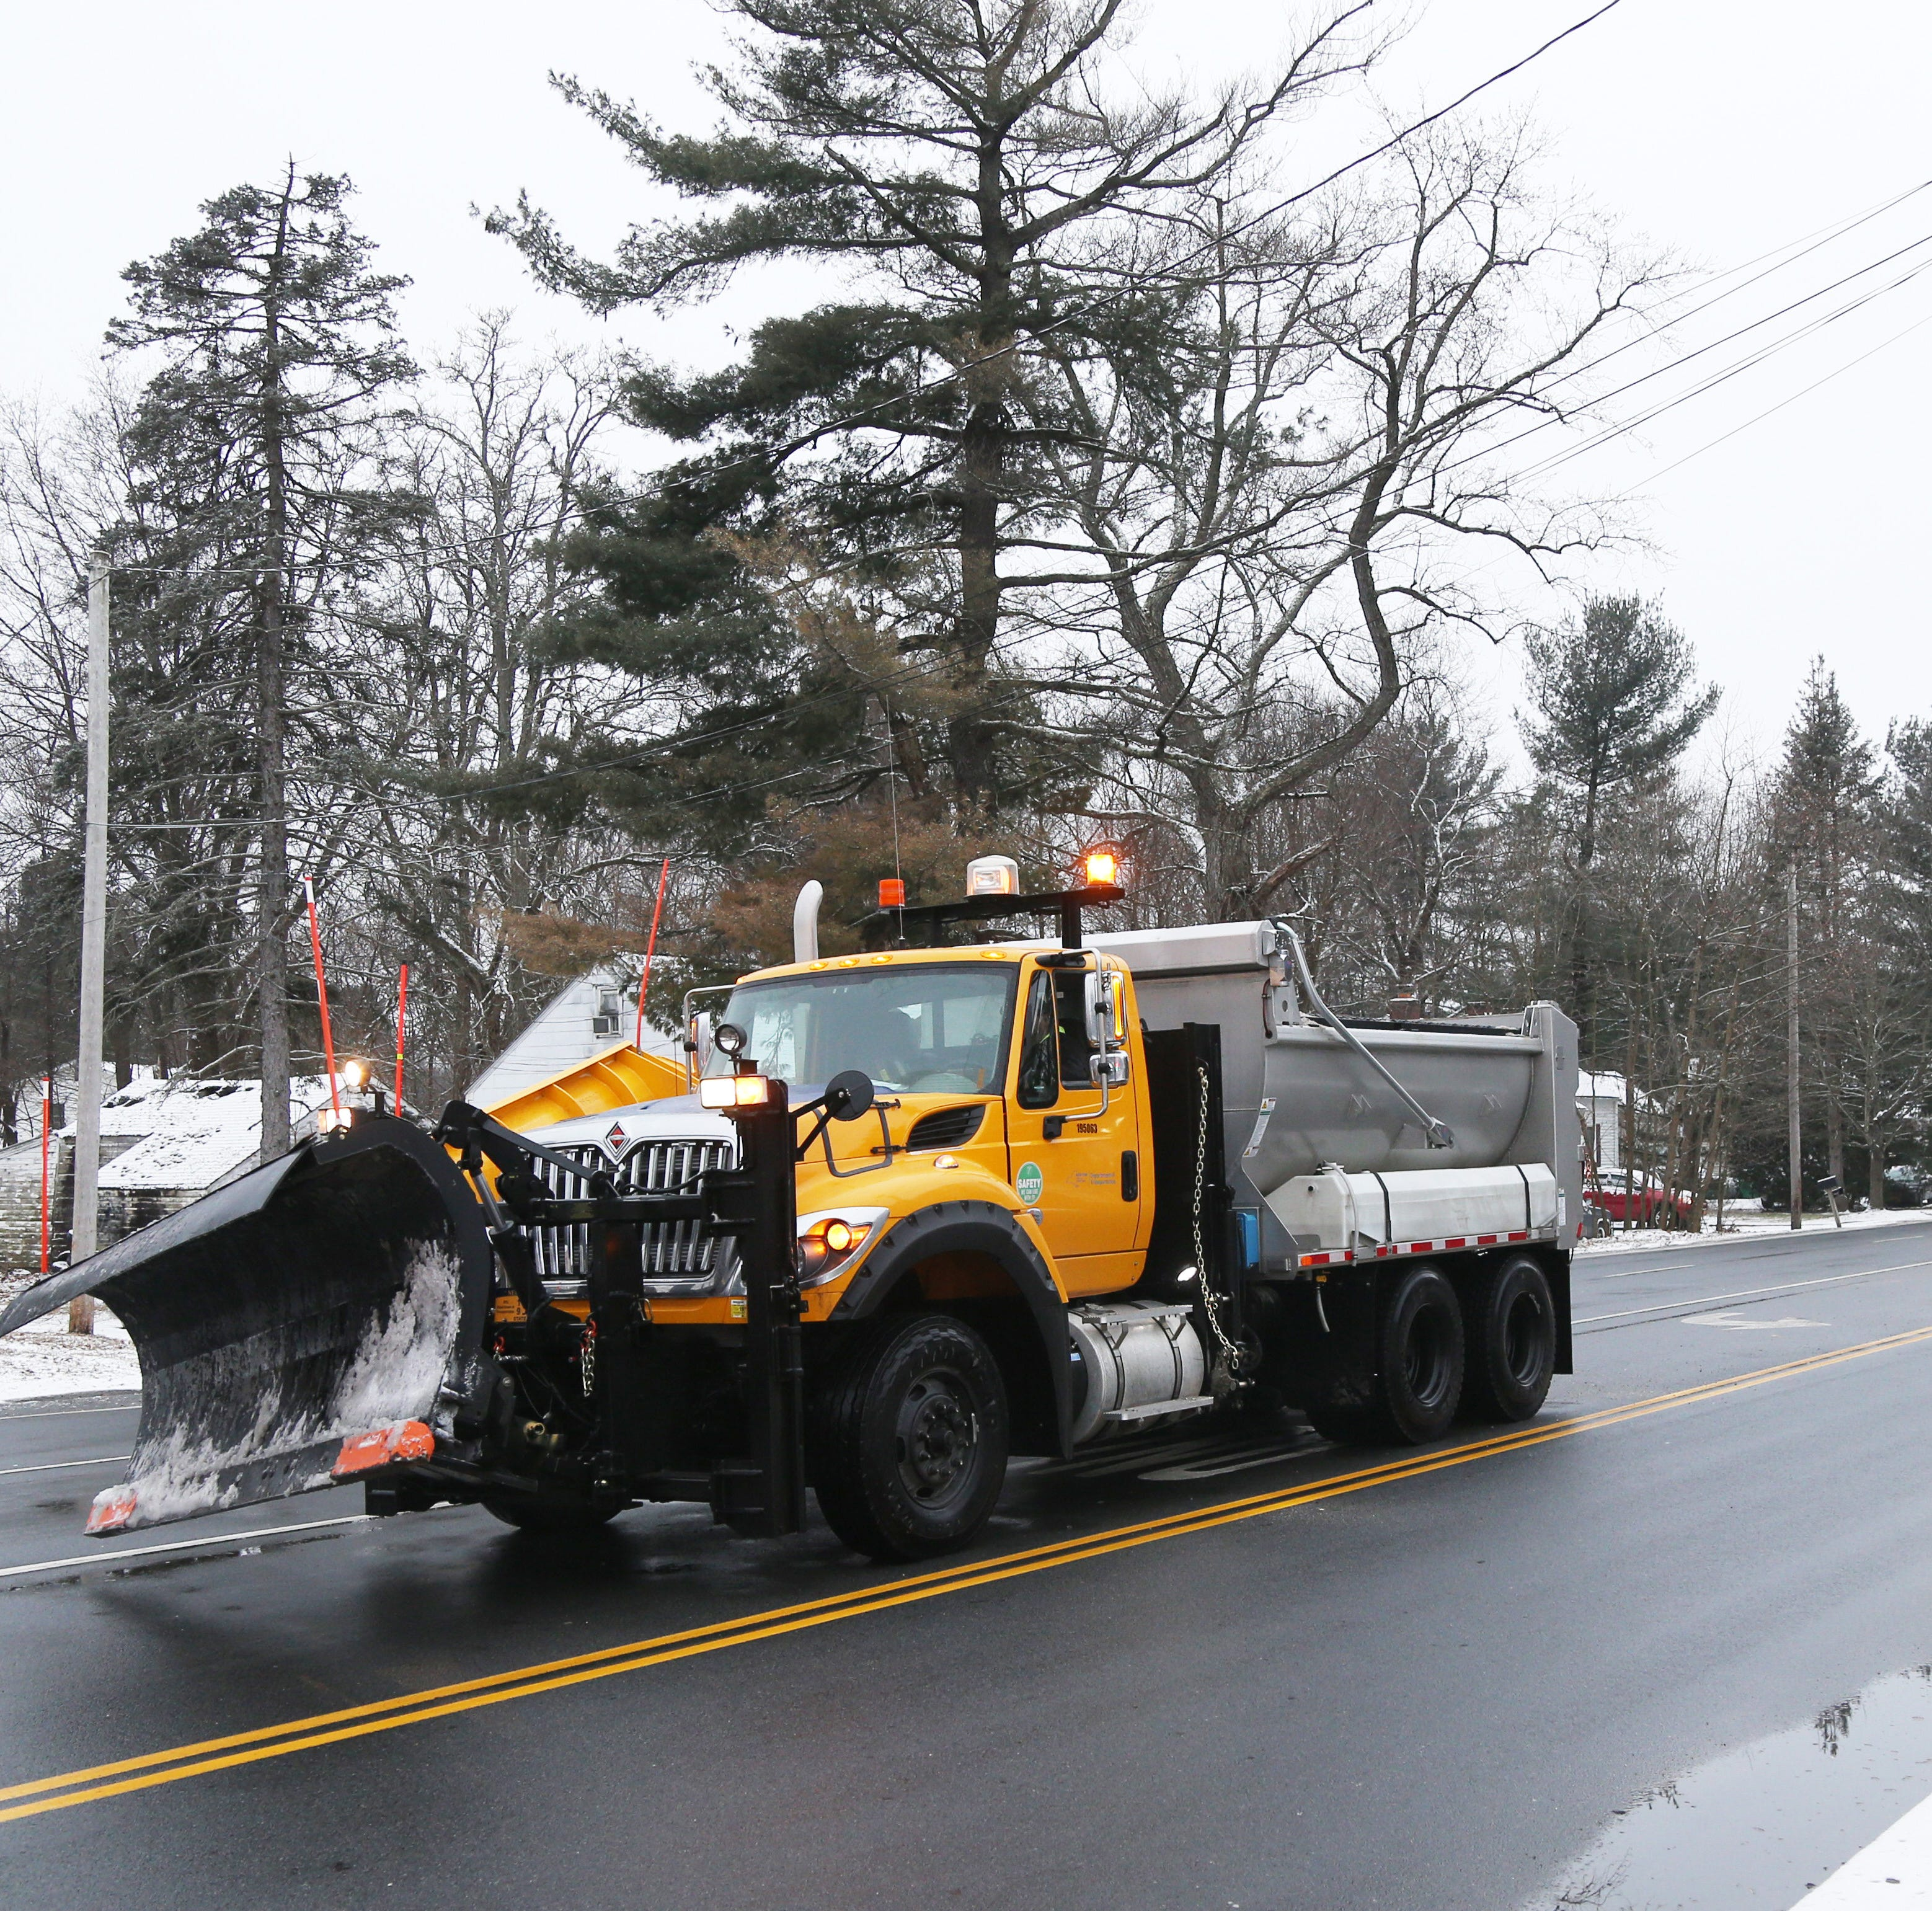 A New York State Department of Transportation snow plow at the intersection of Spackenkill Road and New Hackensack Road in Red Oaks Mill on January 18, 2019.